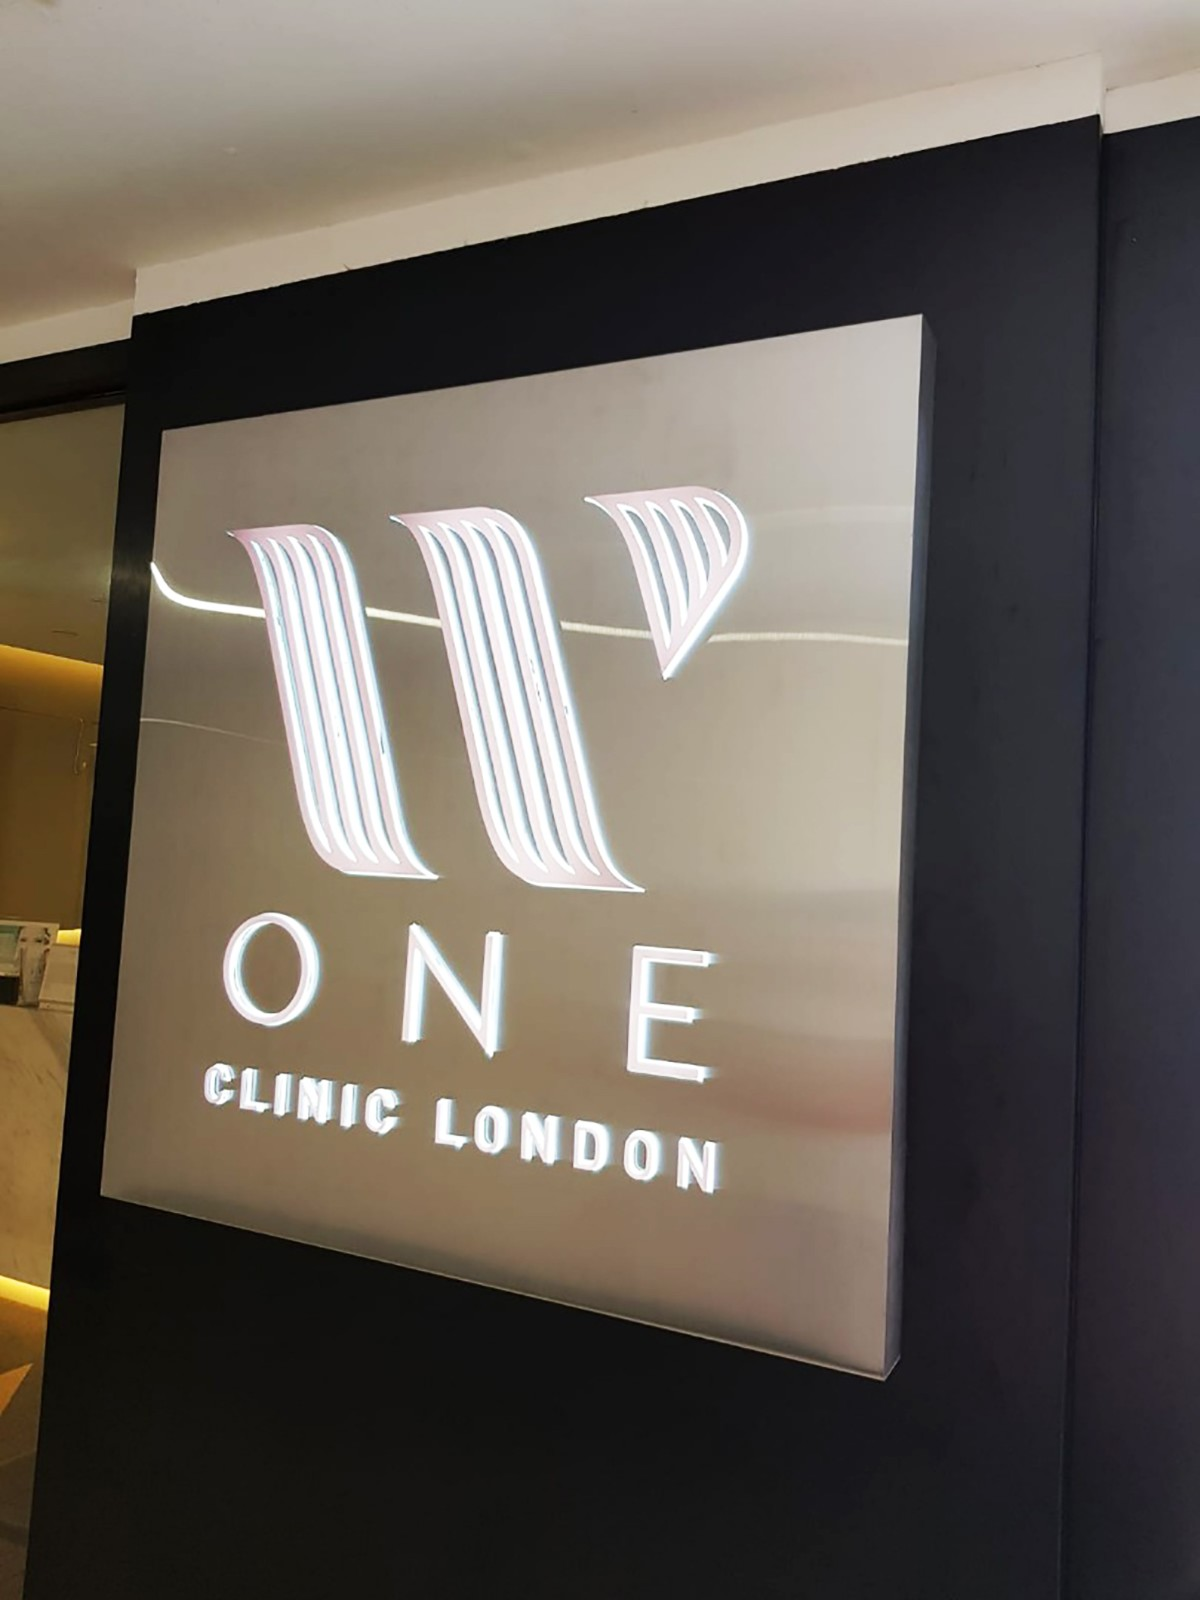 One Clinic London